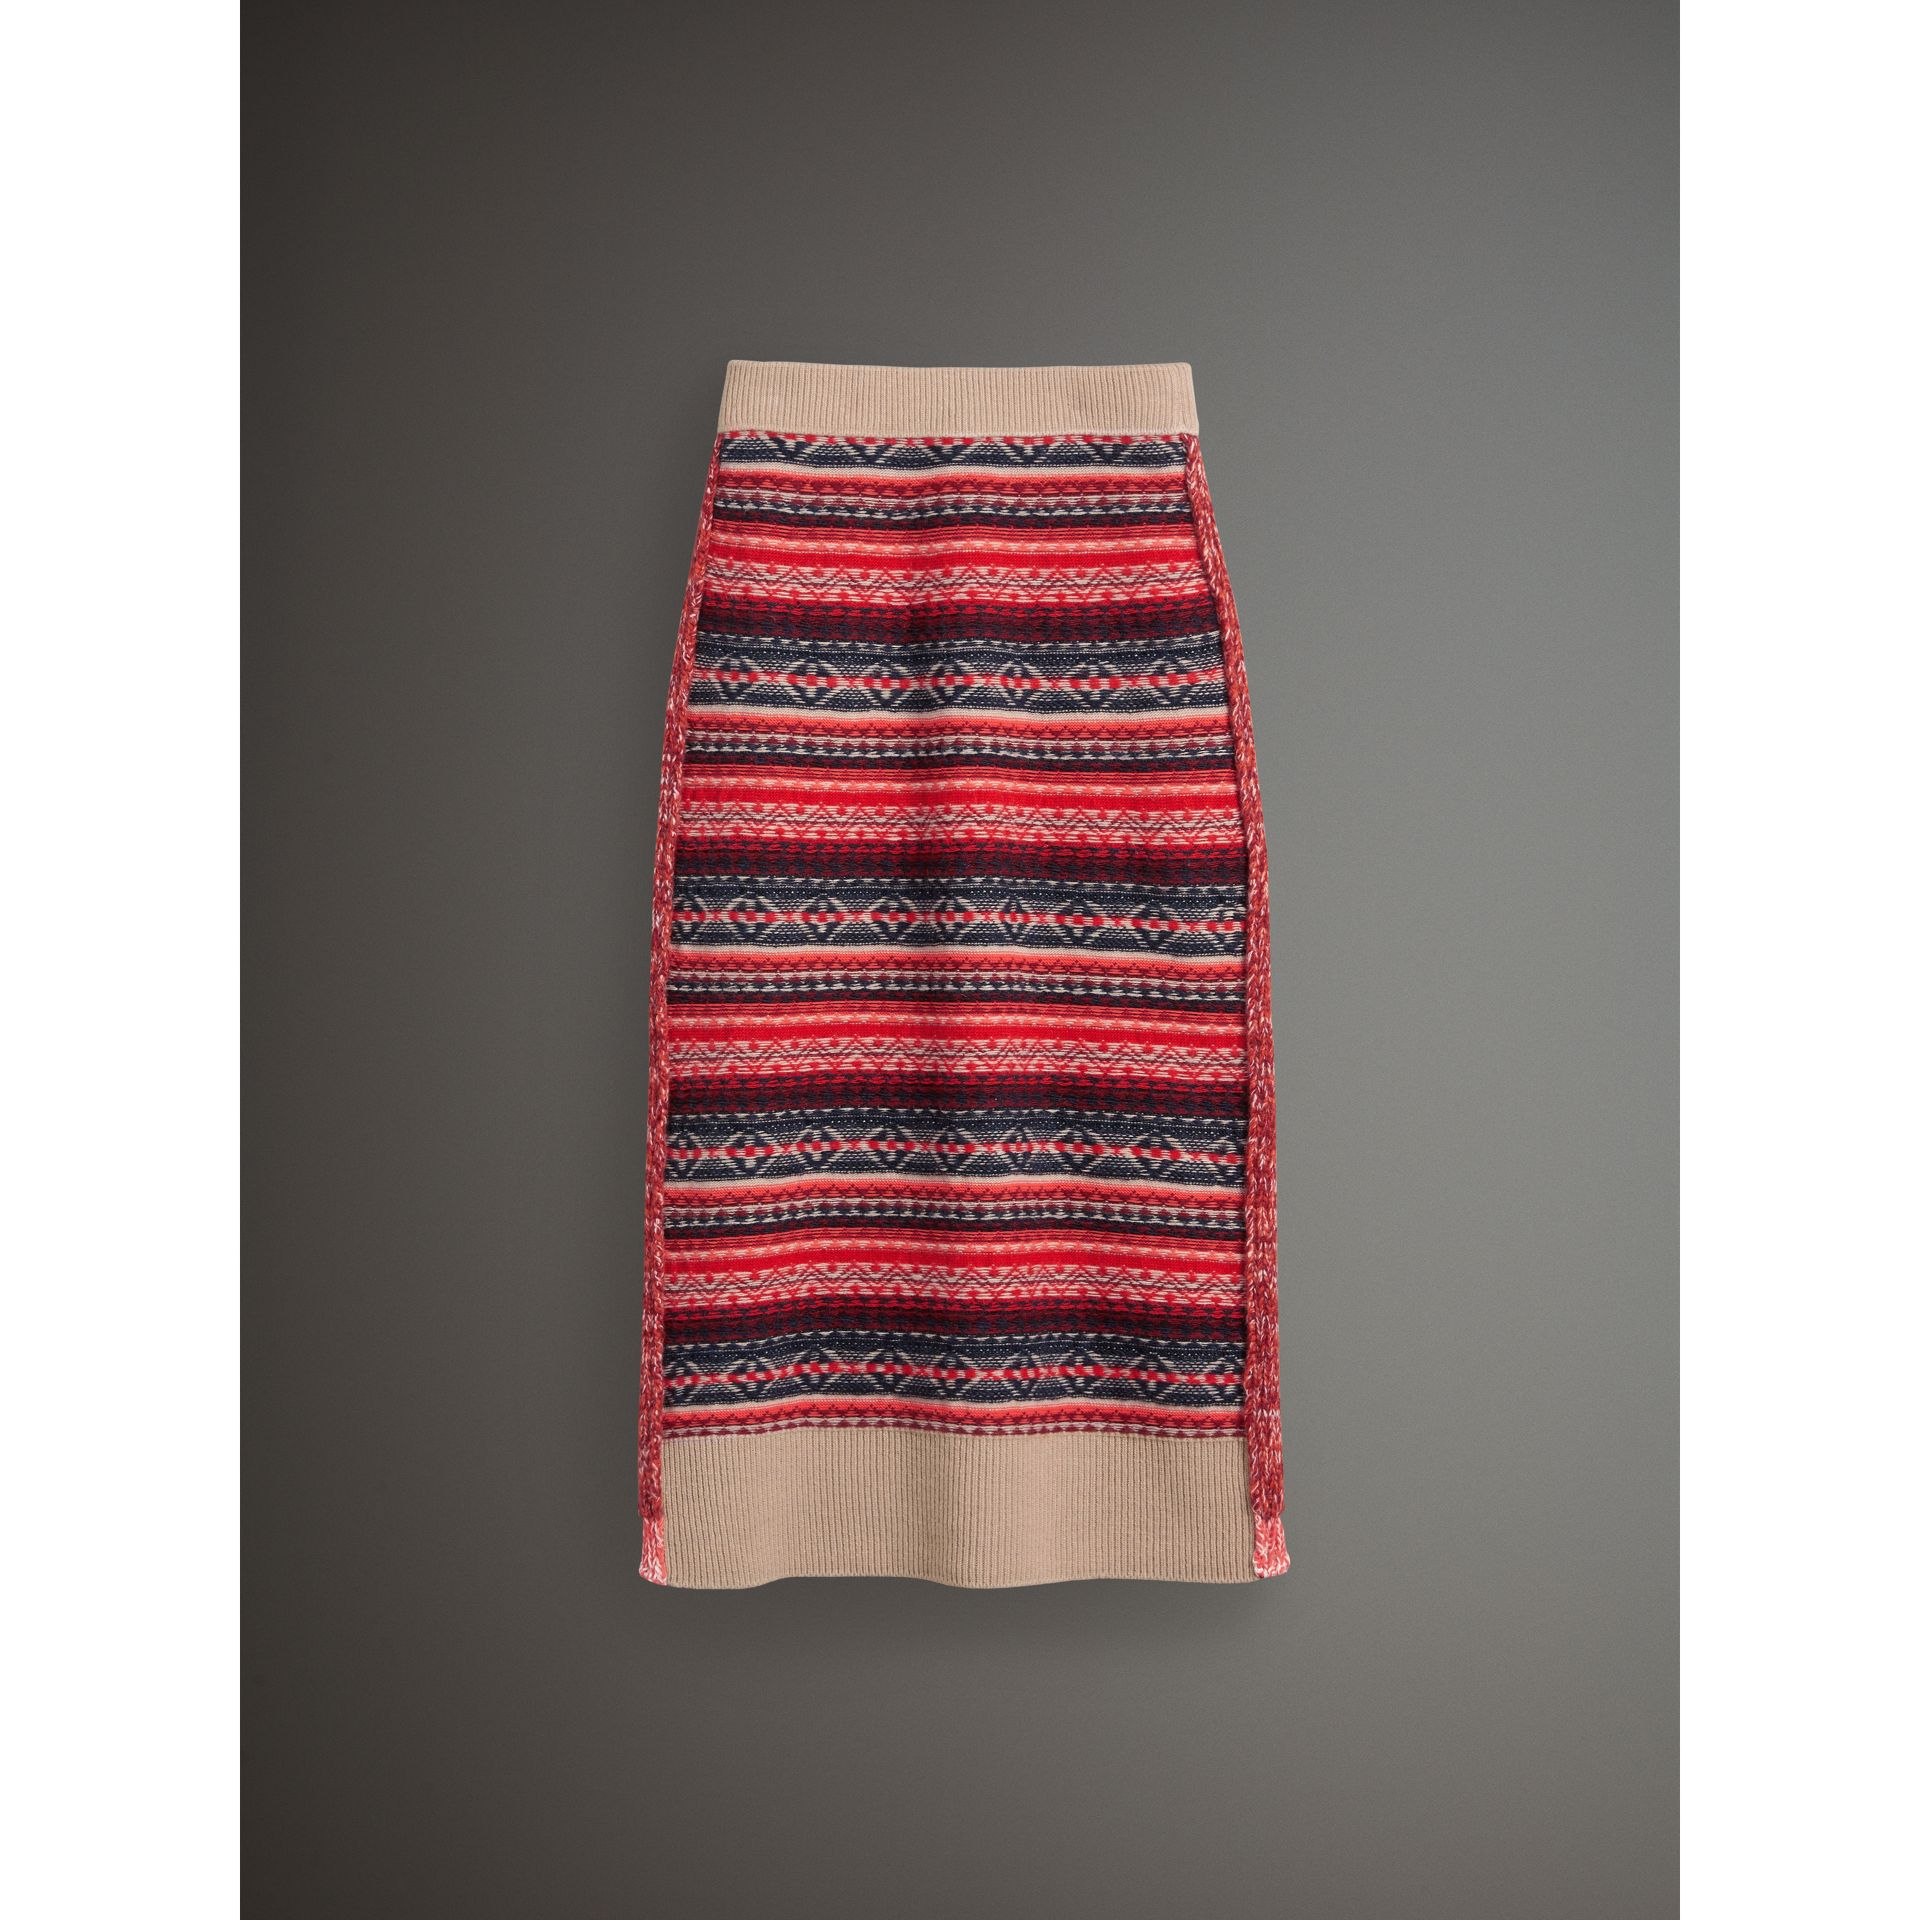 Fair Isle and Cable Knit Wool Cashmere Blend Skirt in Multicolour - Women | Burberry Hong Kong - gallery image 3